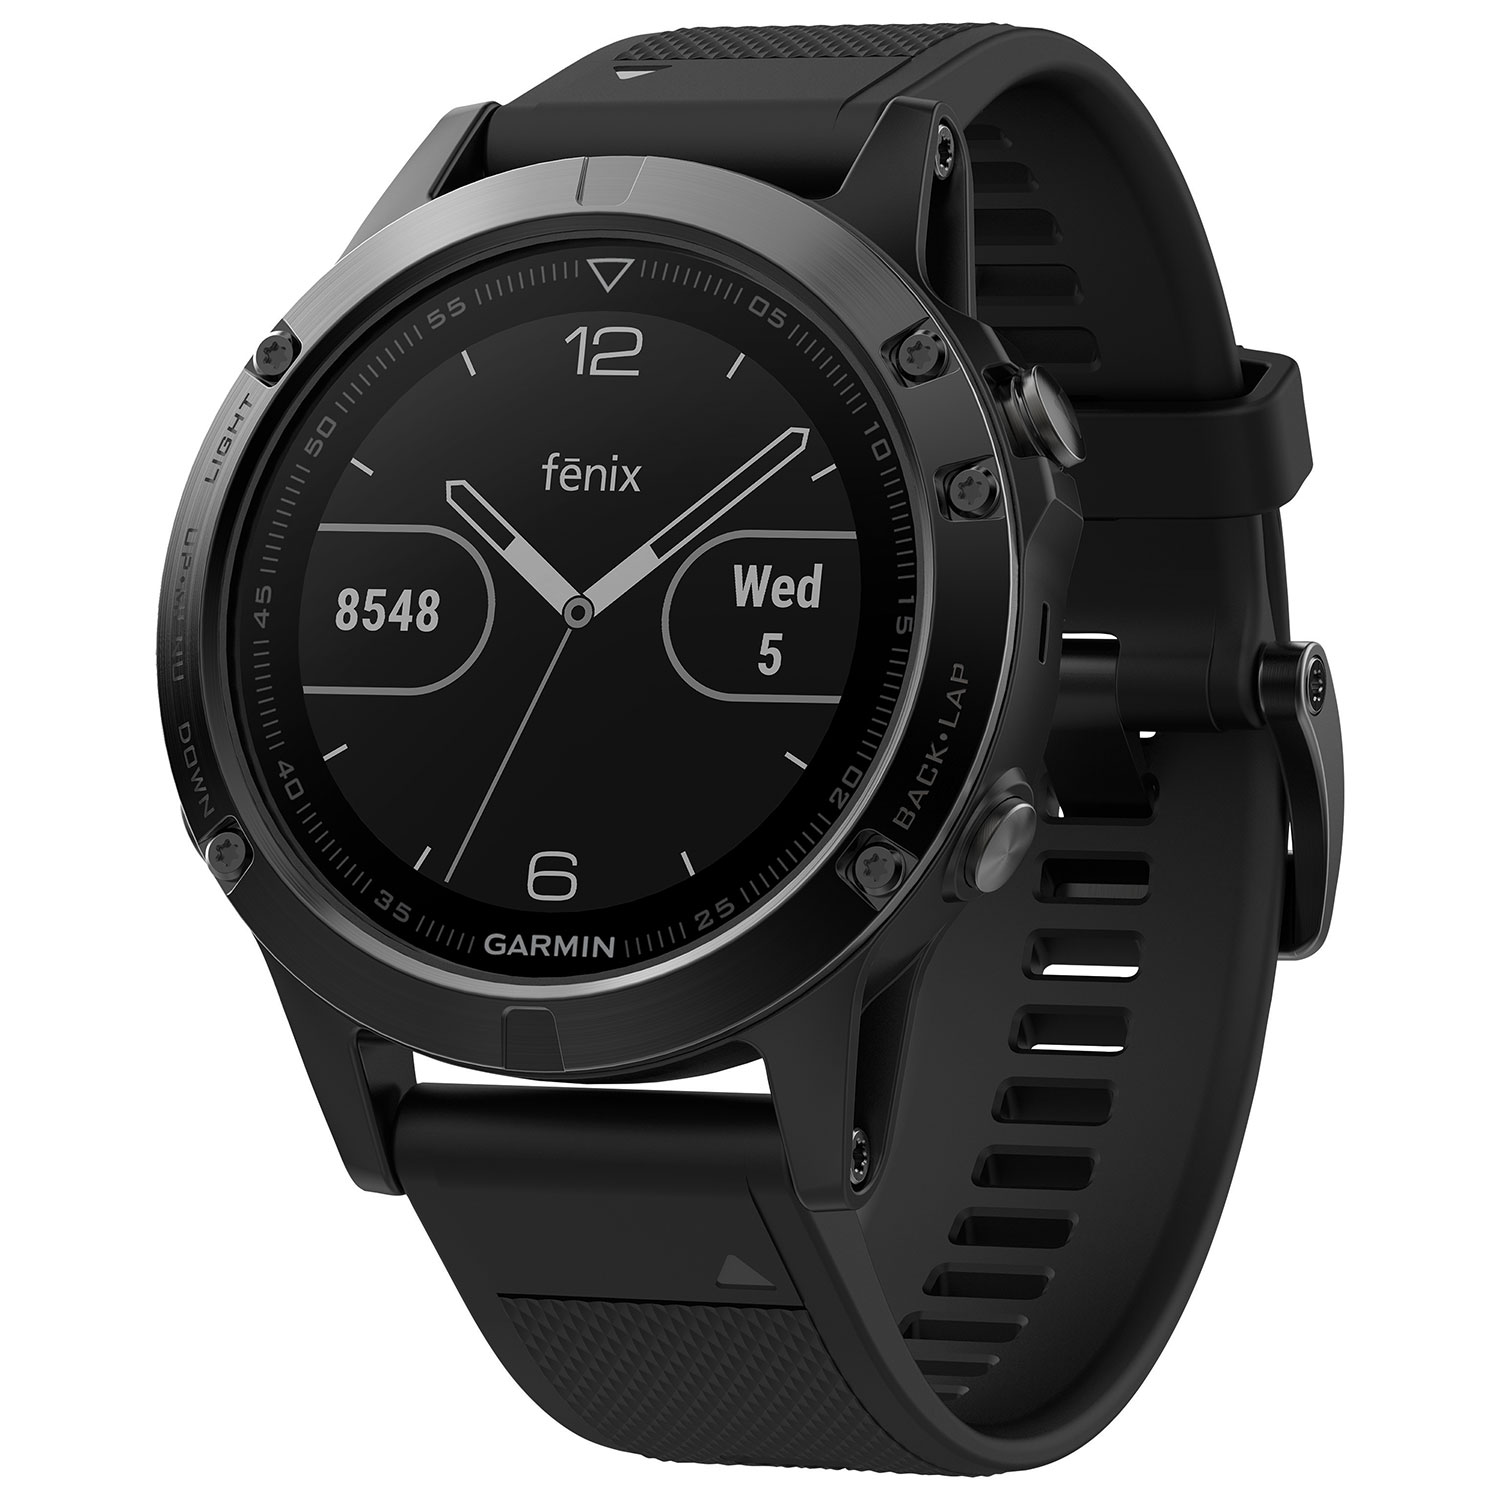 en fitness run running products navigation gps watches and c training electronics